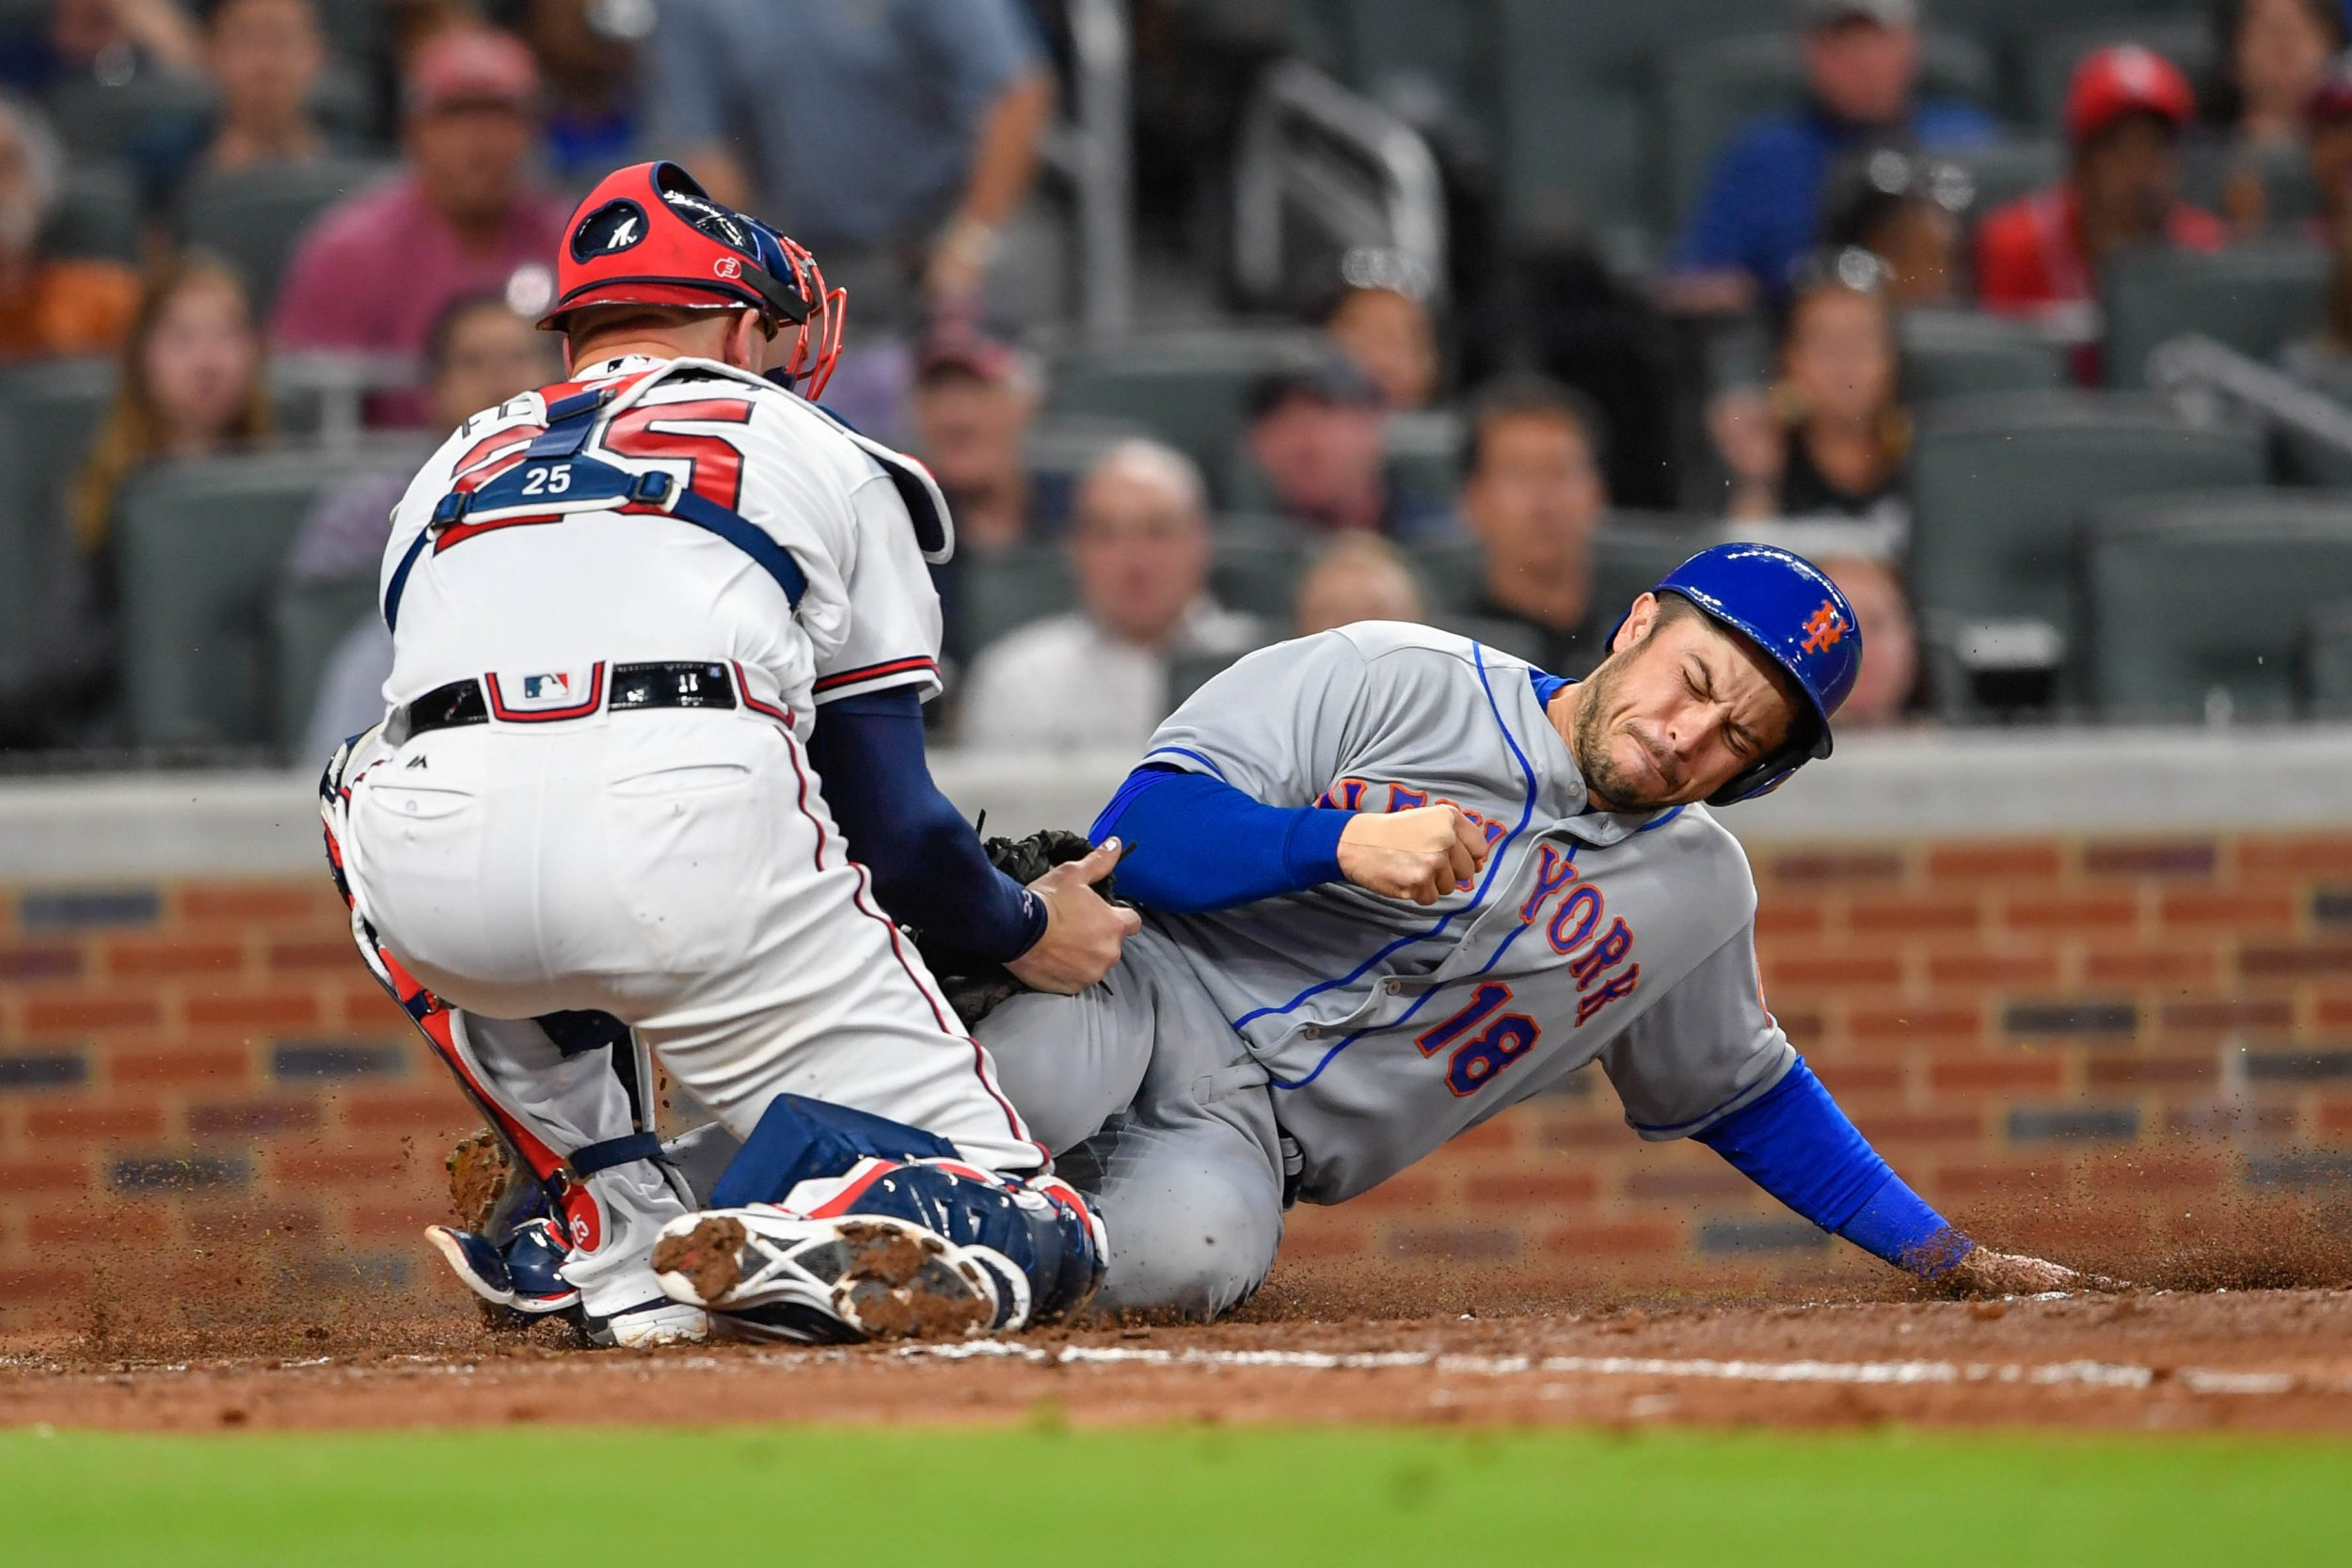 New York Mets catcher Travis d'Arnaud, right, slides under the tag by Atlanta Braves catcher Tyler Flowers at SunTrust Park, Atlanta, May 1 2017.